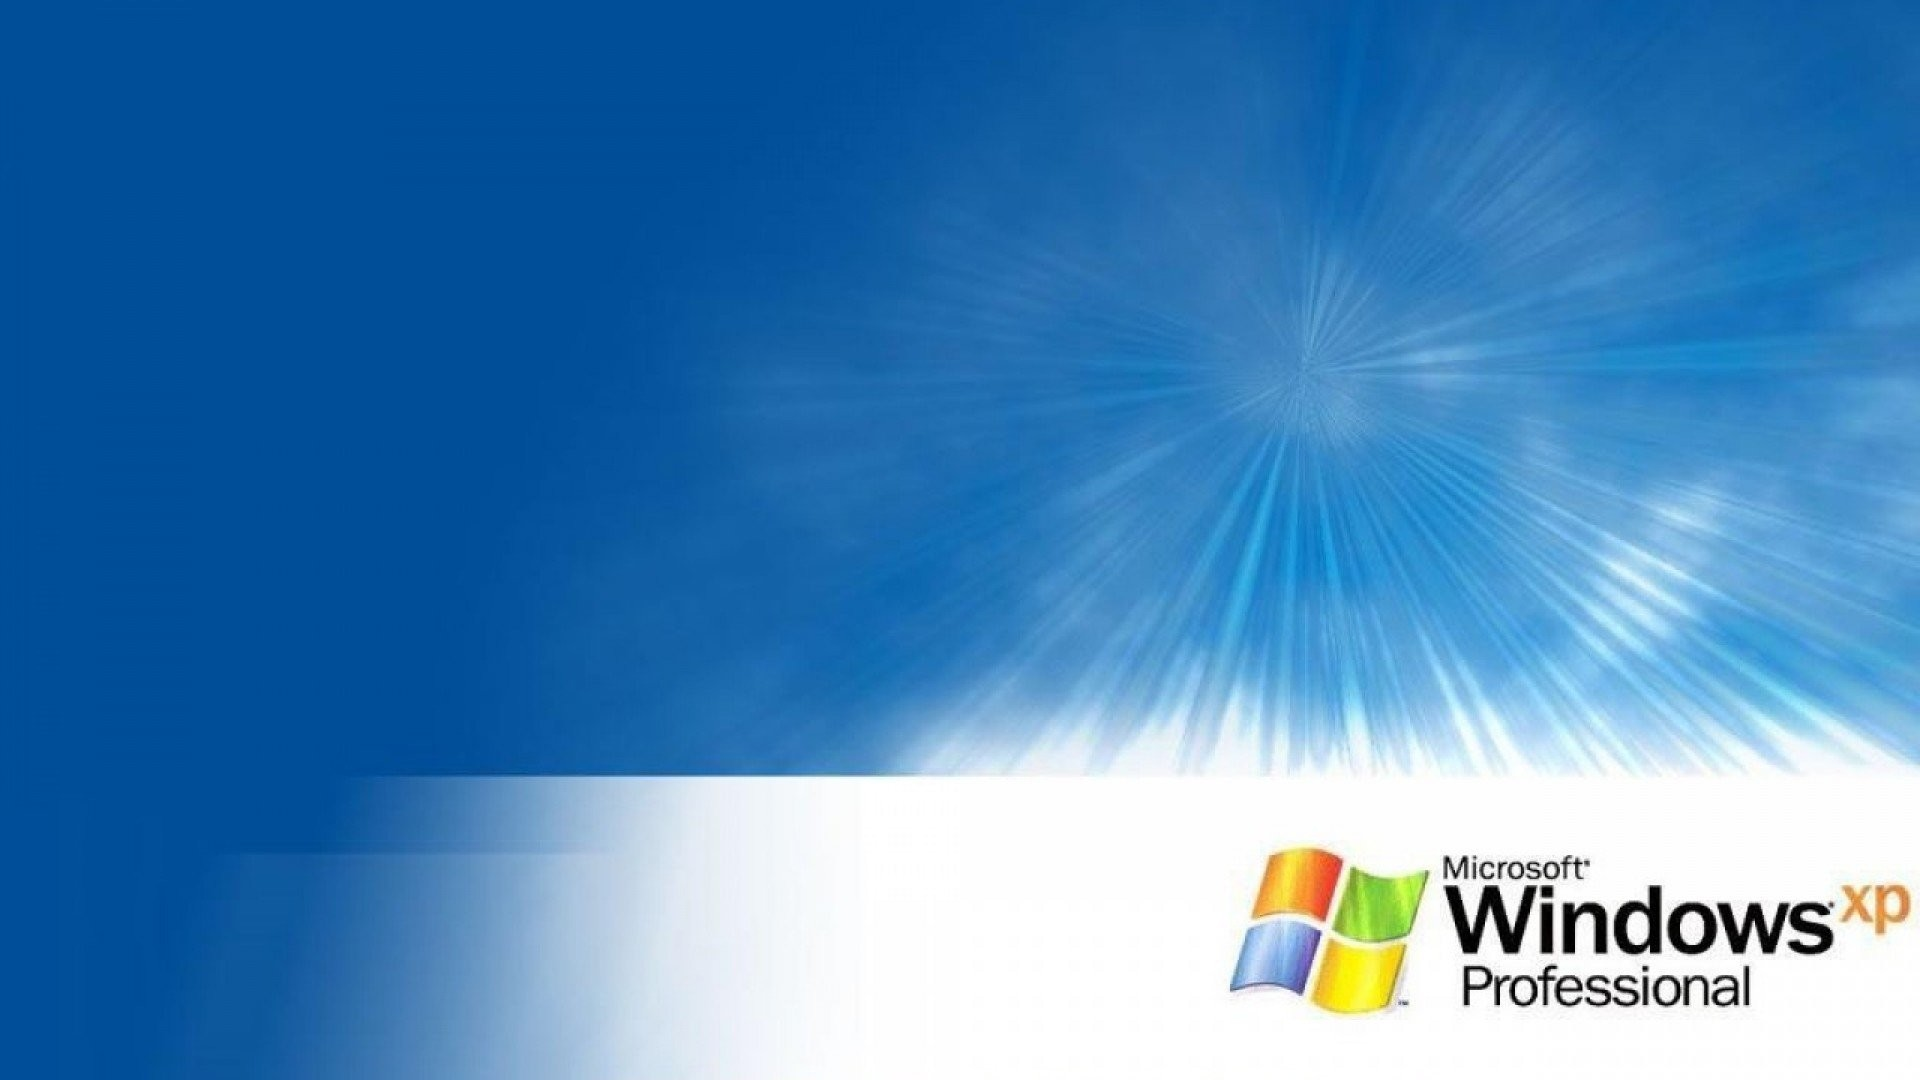 Windows Xp Professional Wallpaper 44 Images